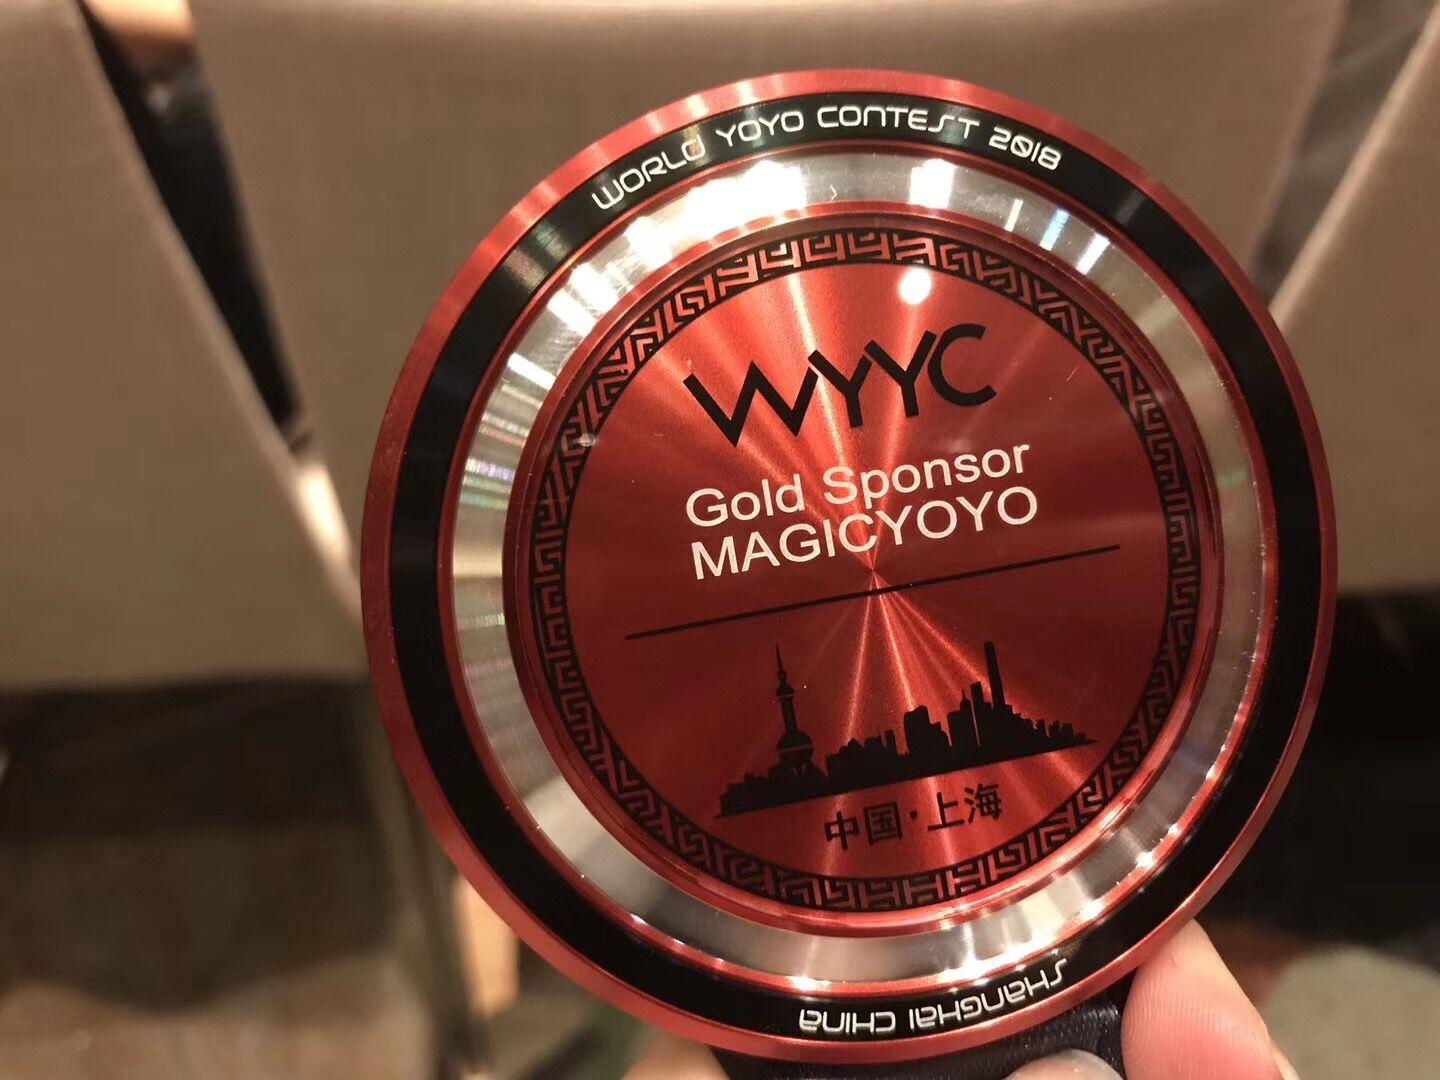 World YoYo Contest 2018